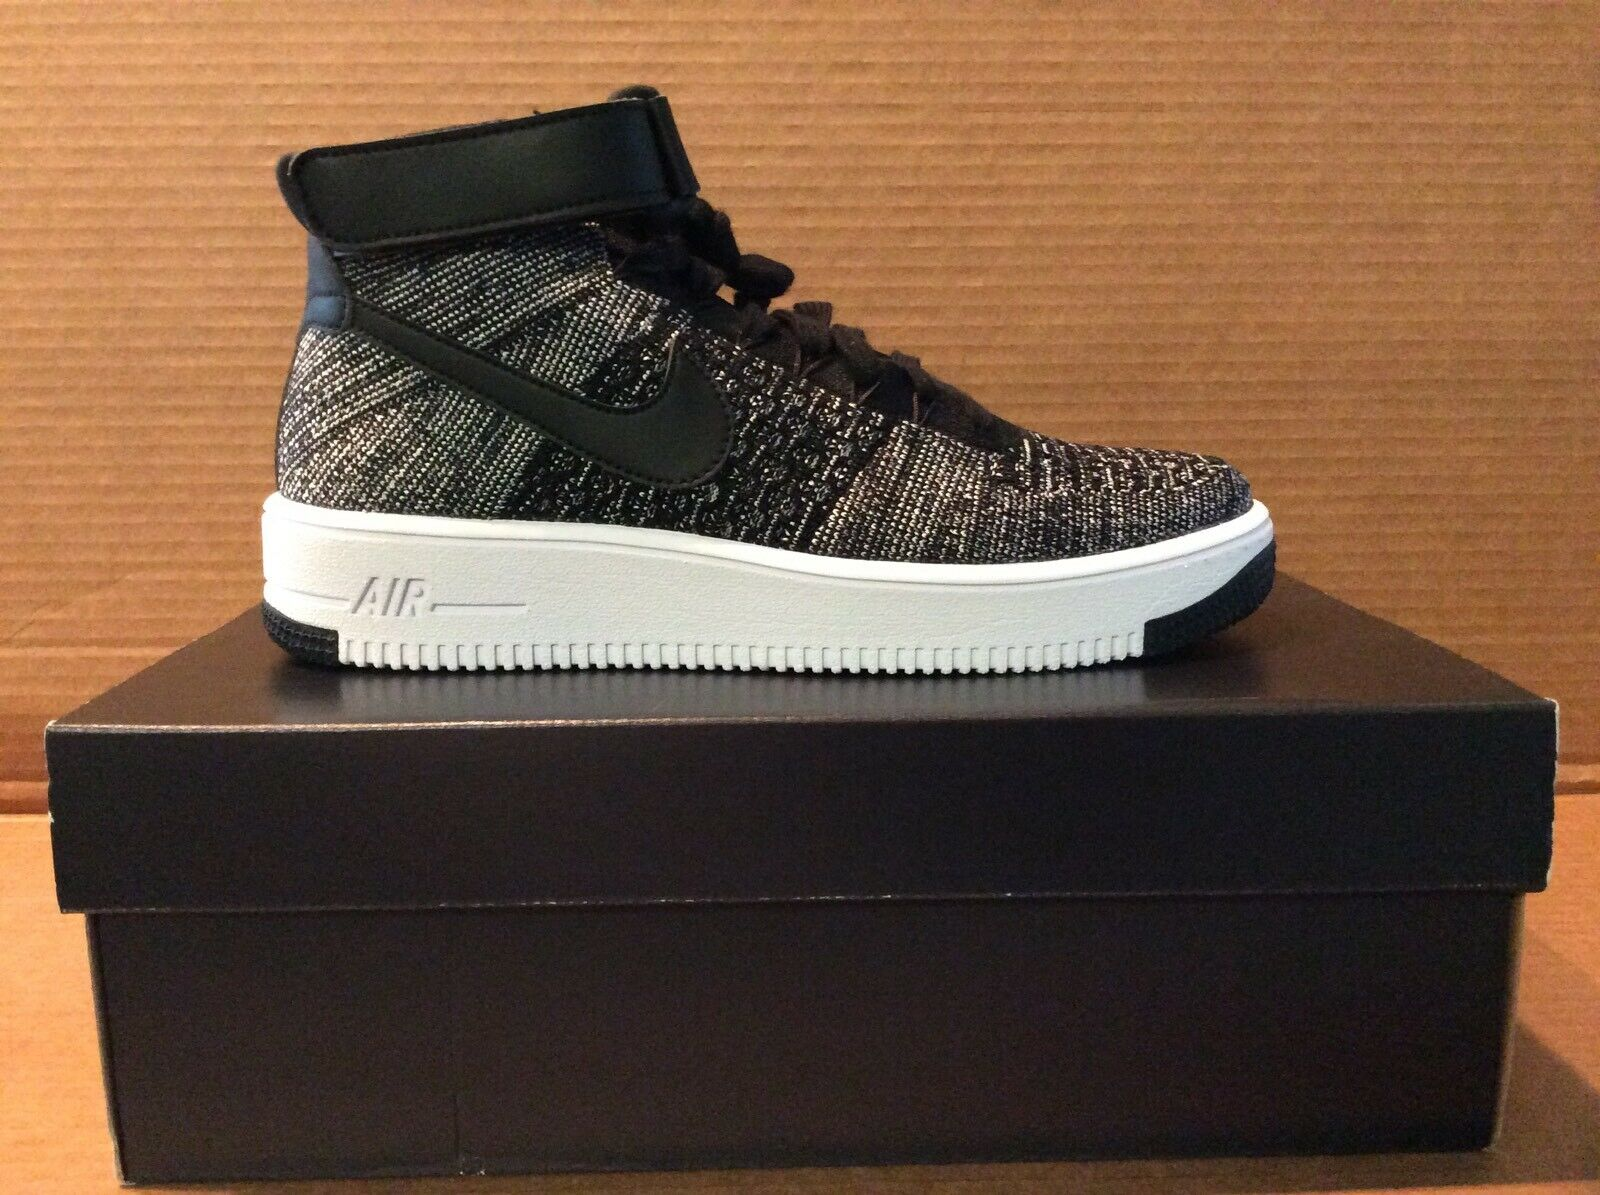 cf1a5d59ae Nike AF1 Flyknit Mid size 10.5 mens Ultra numbxm2288-new shoes ...